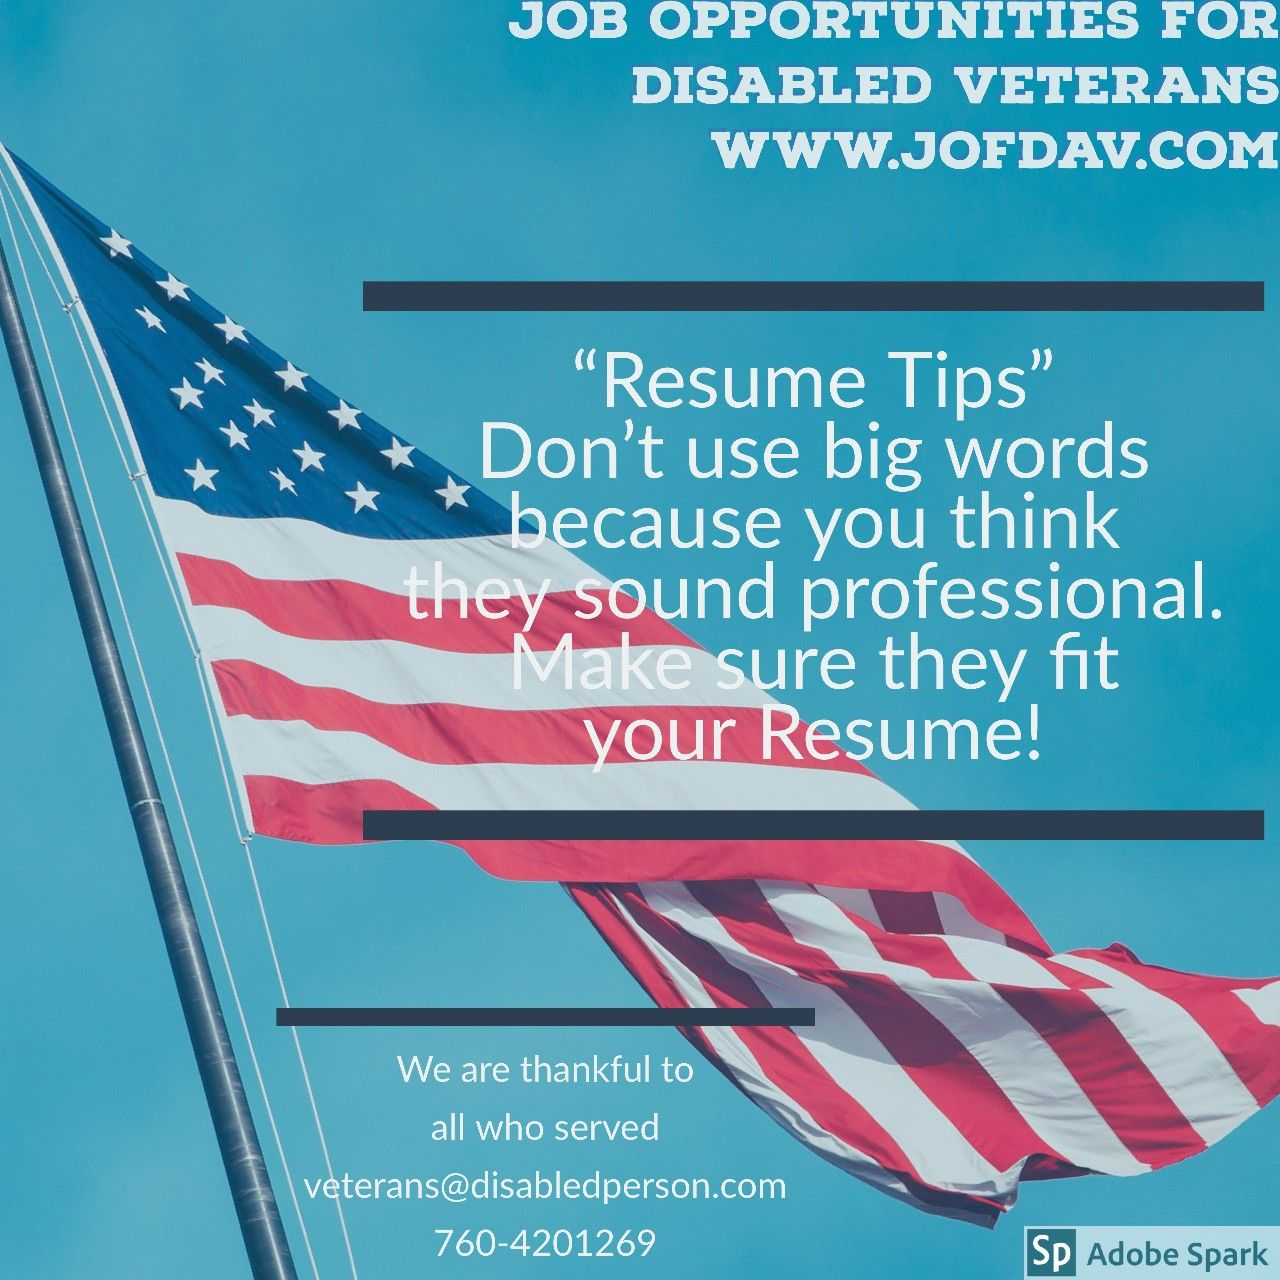 Job Opportunities For Disabled Veterans Www Jofdav Com Resume Tip